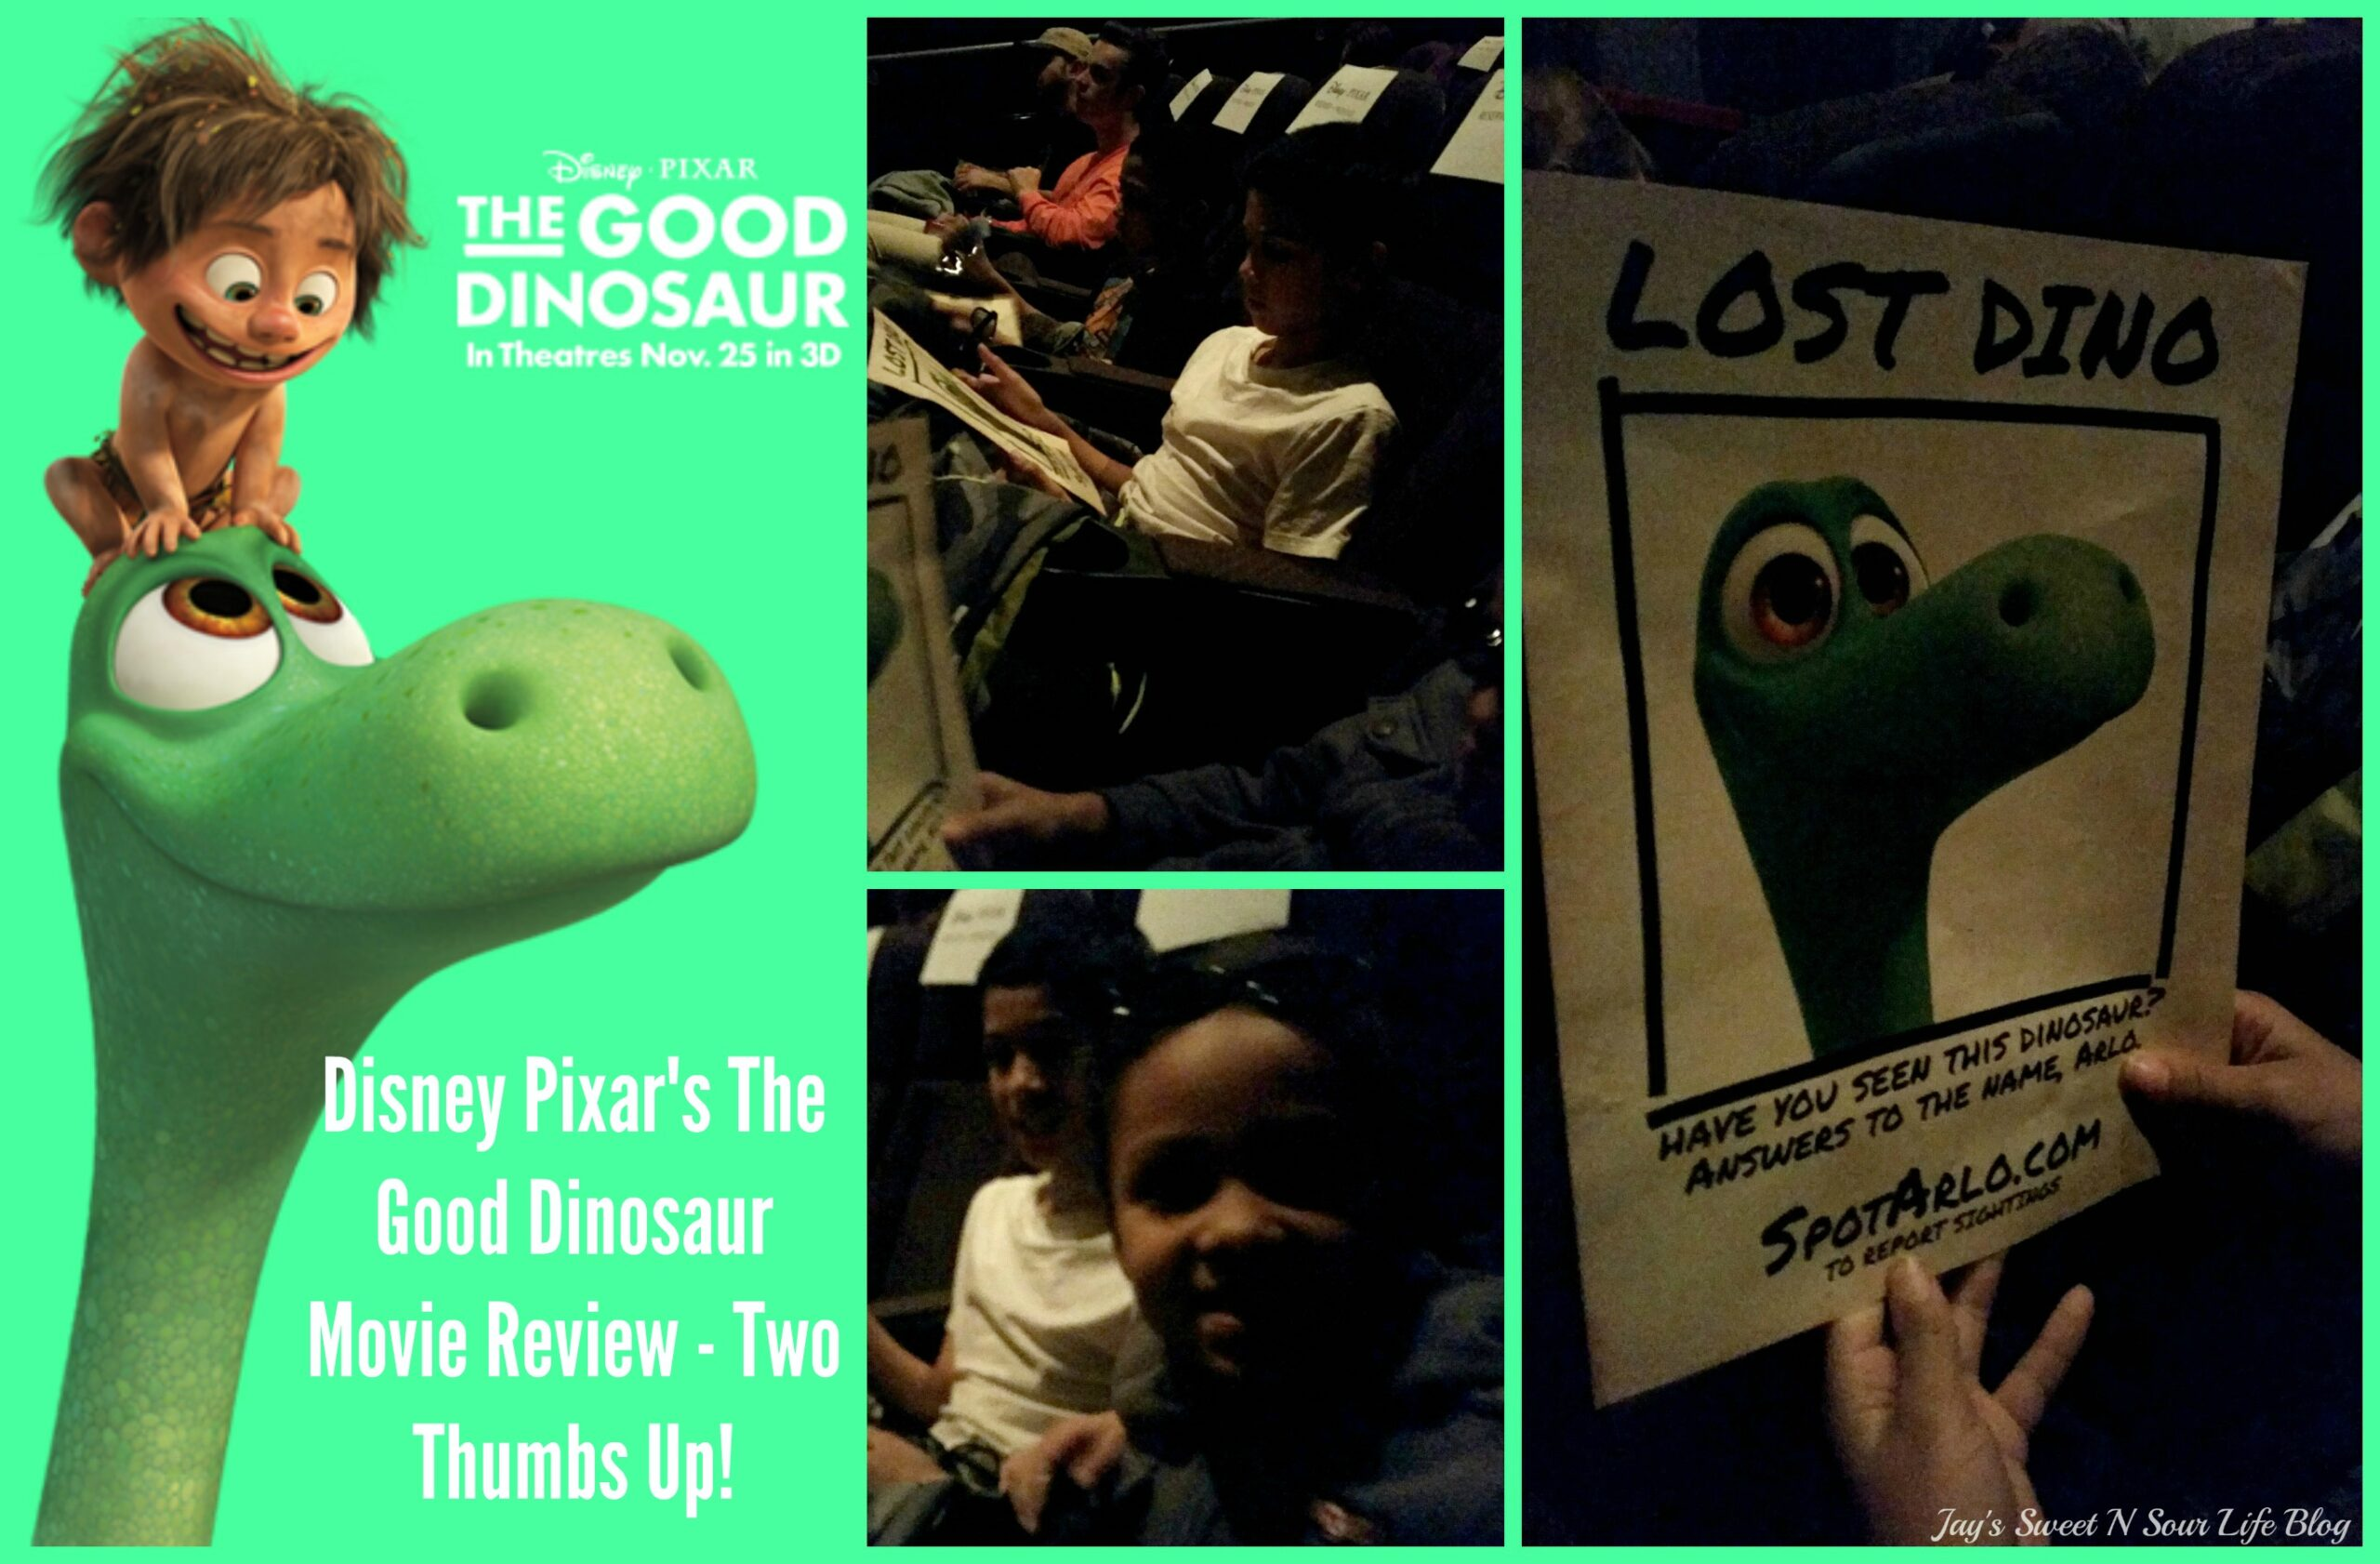 Disney Pixar's The Good Dinosaur Movie Review – Two Thumbs Up!